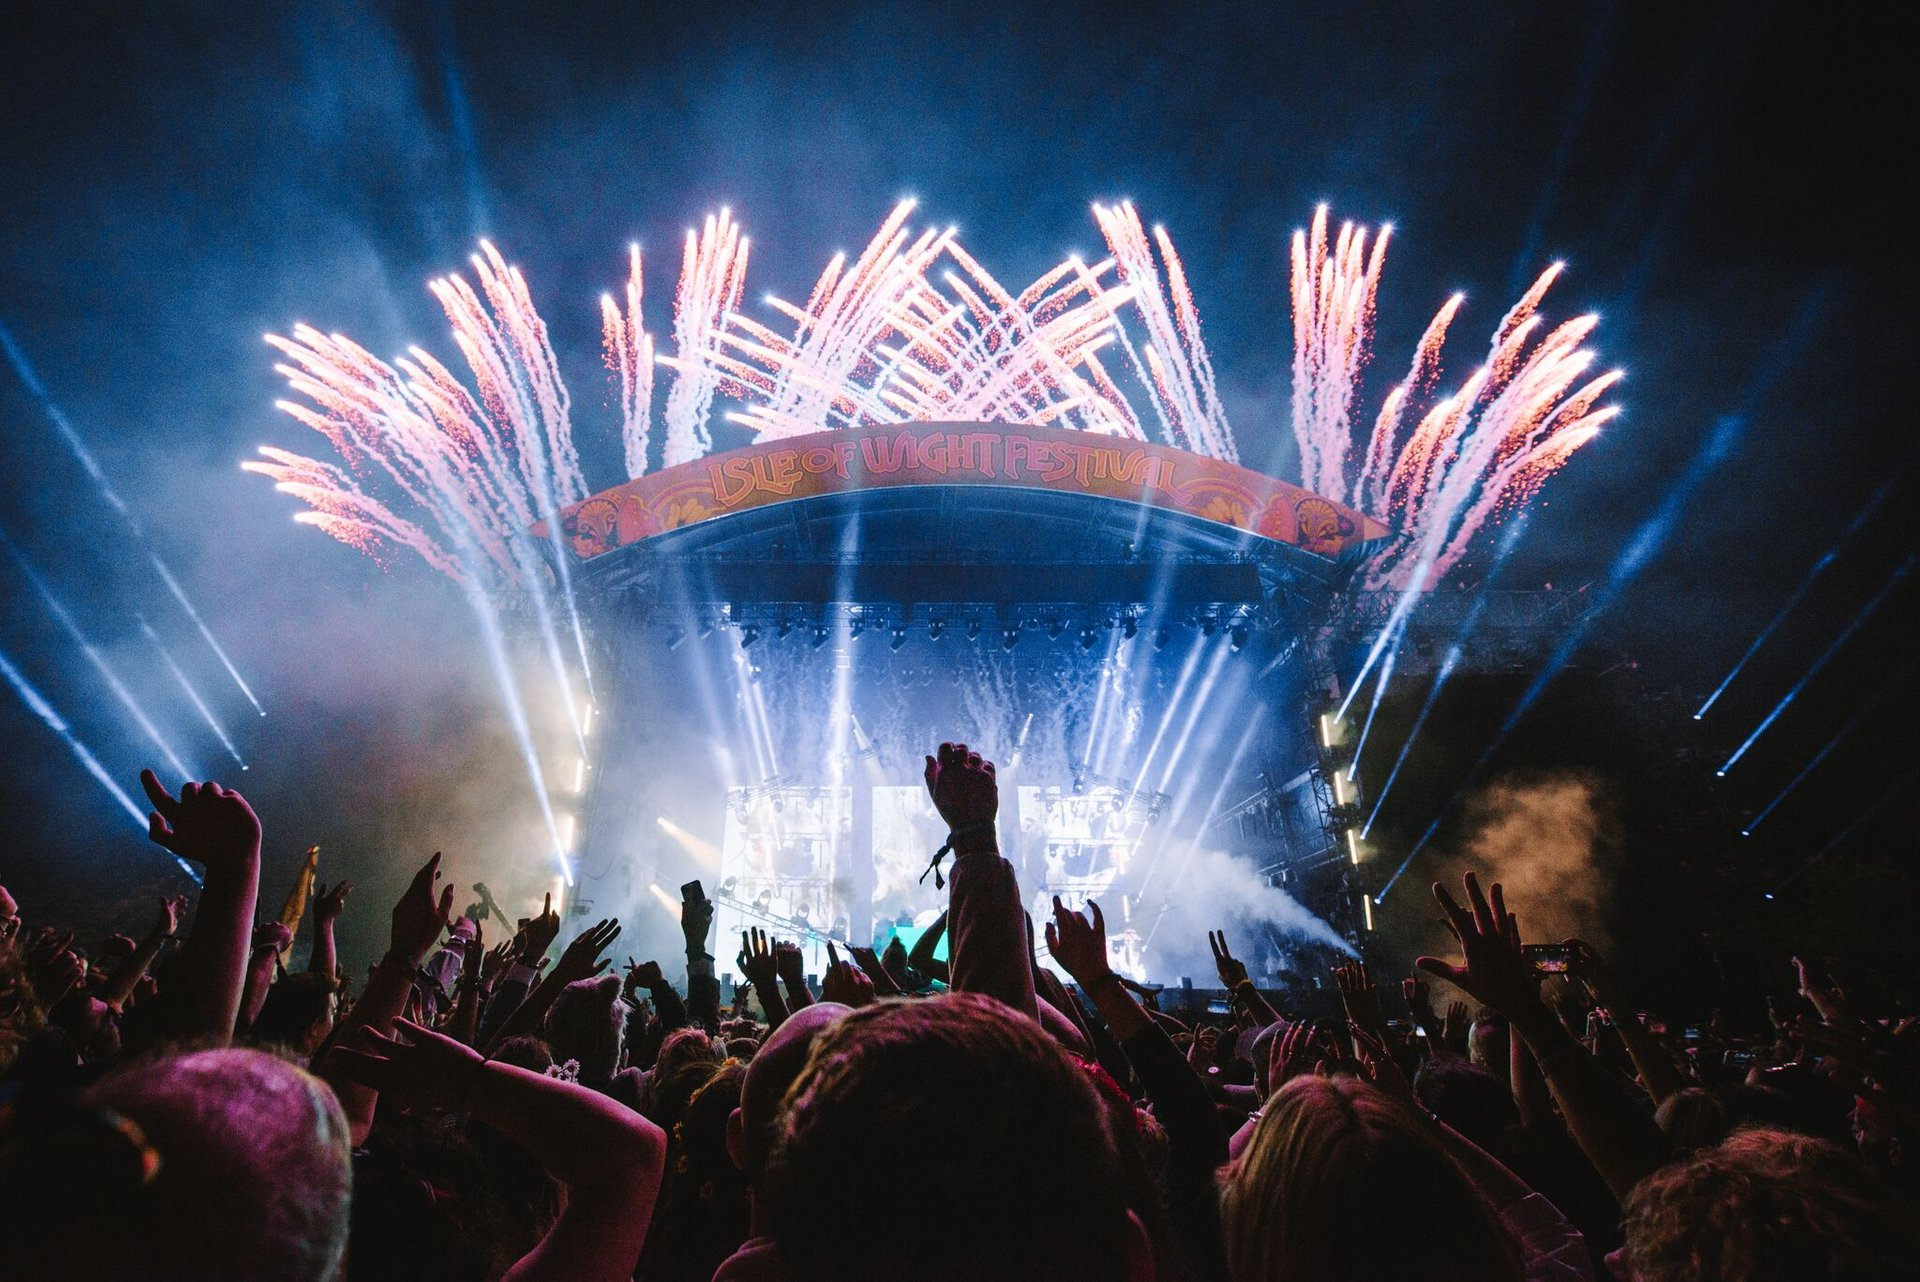 Isle of Wight Festival in England 2019 - Best Time